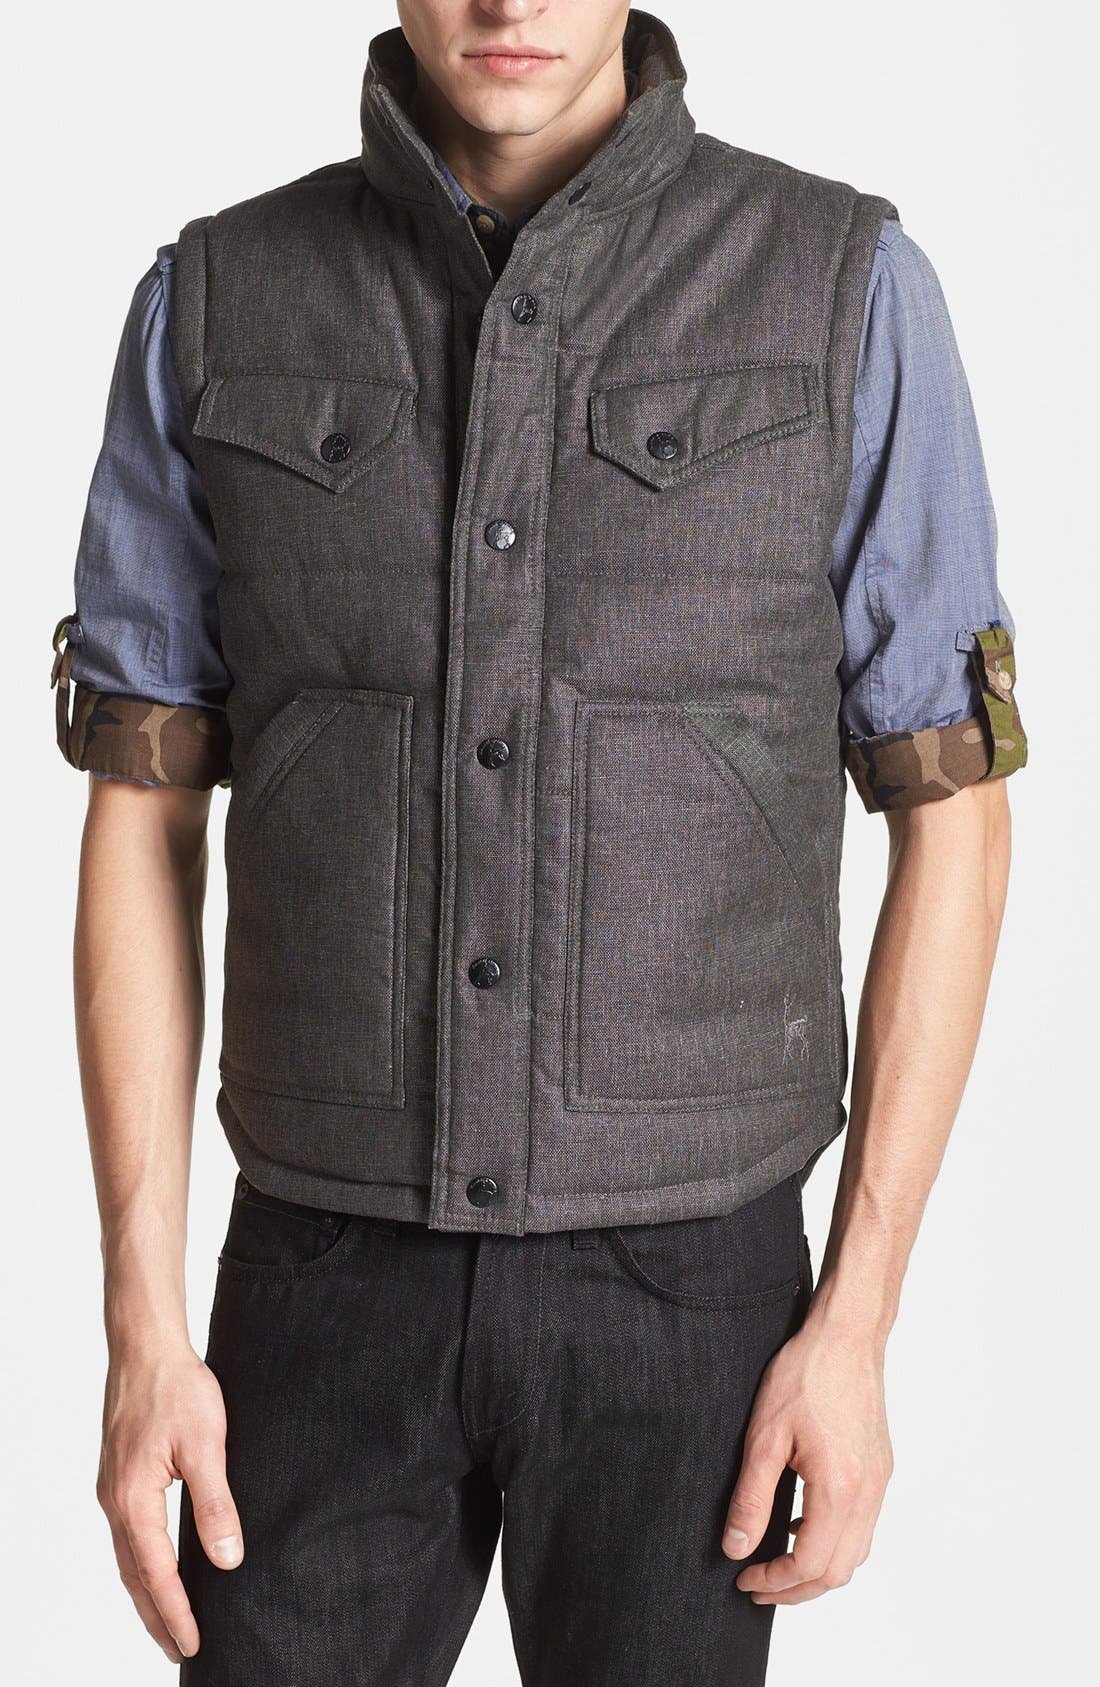 Main Image - Kane & Unke Quilted Cotton Vest